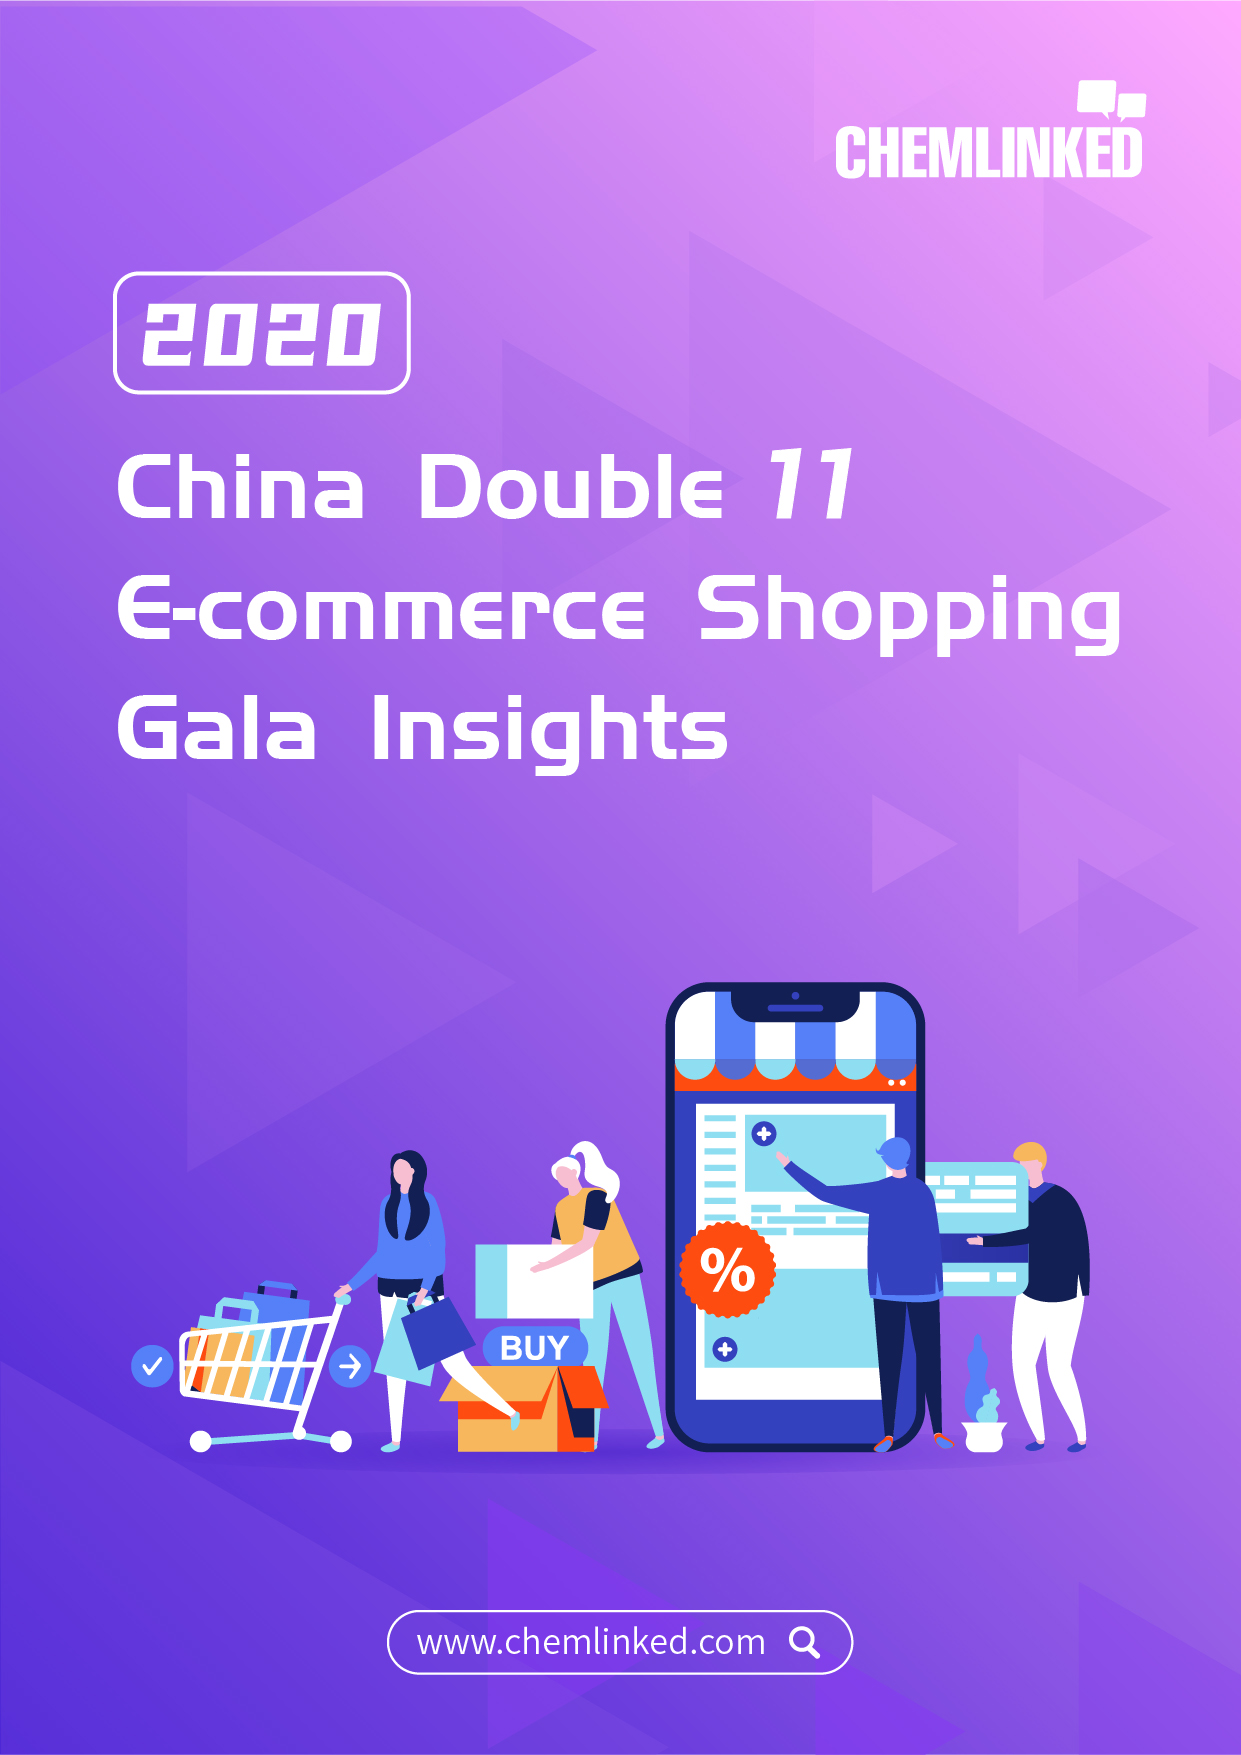 2020 China Double 11 E-commerce Shopping Gala Insights